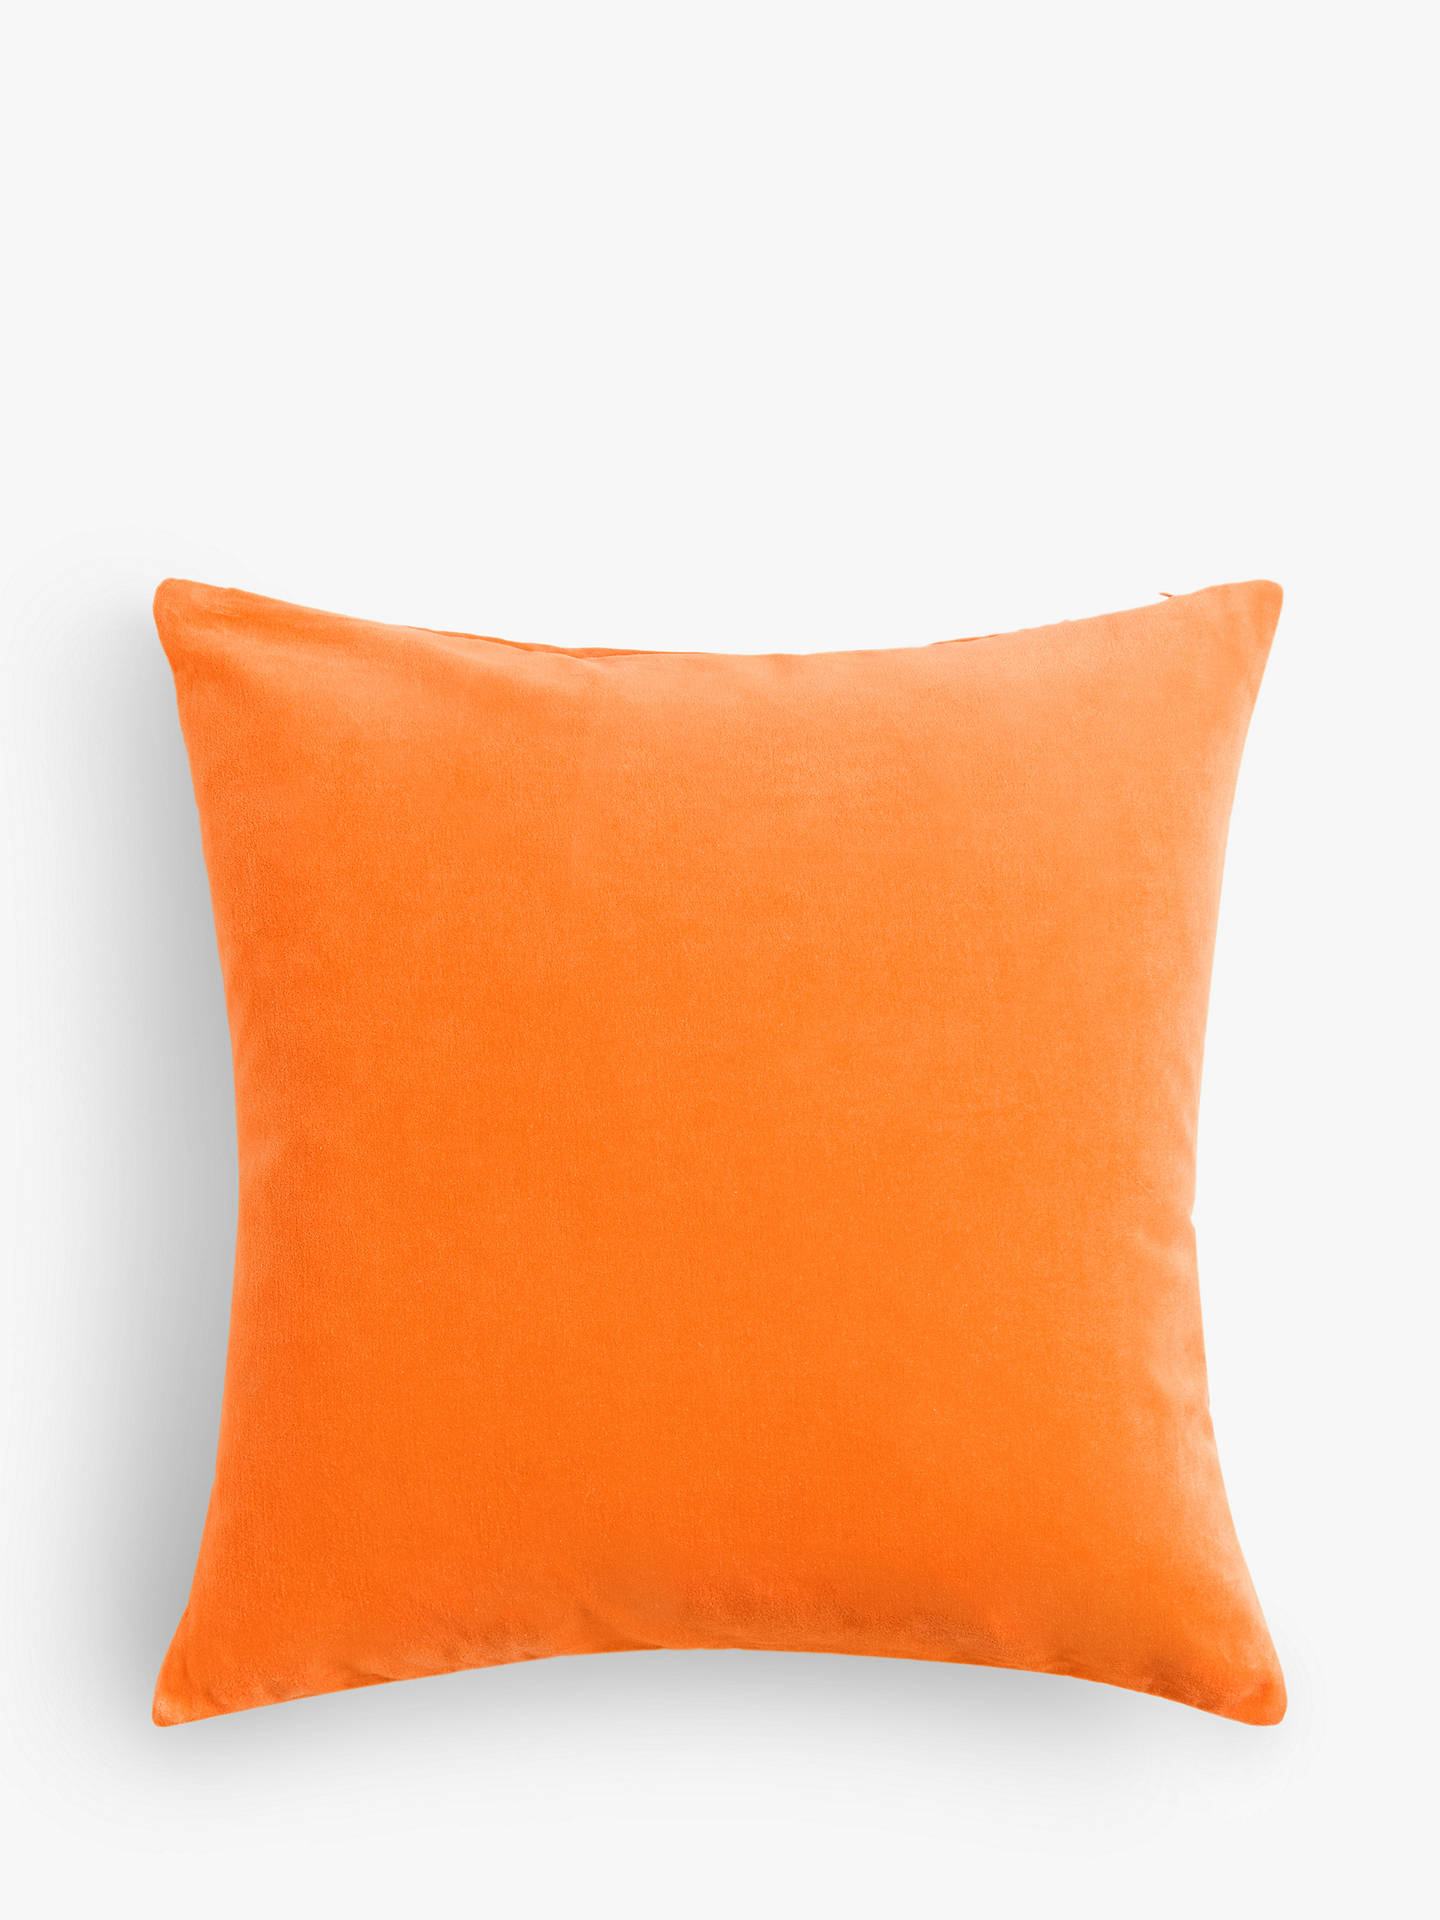 Buy John Lewis & Partners Cotton Velvet Cushion, Sunburst Online at johnlewis.com